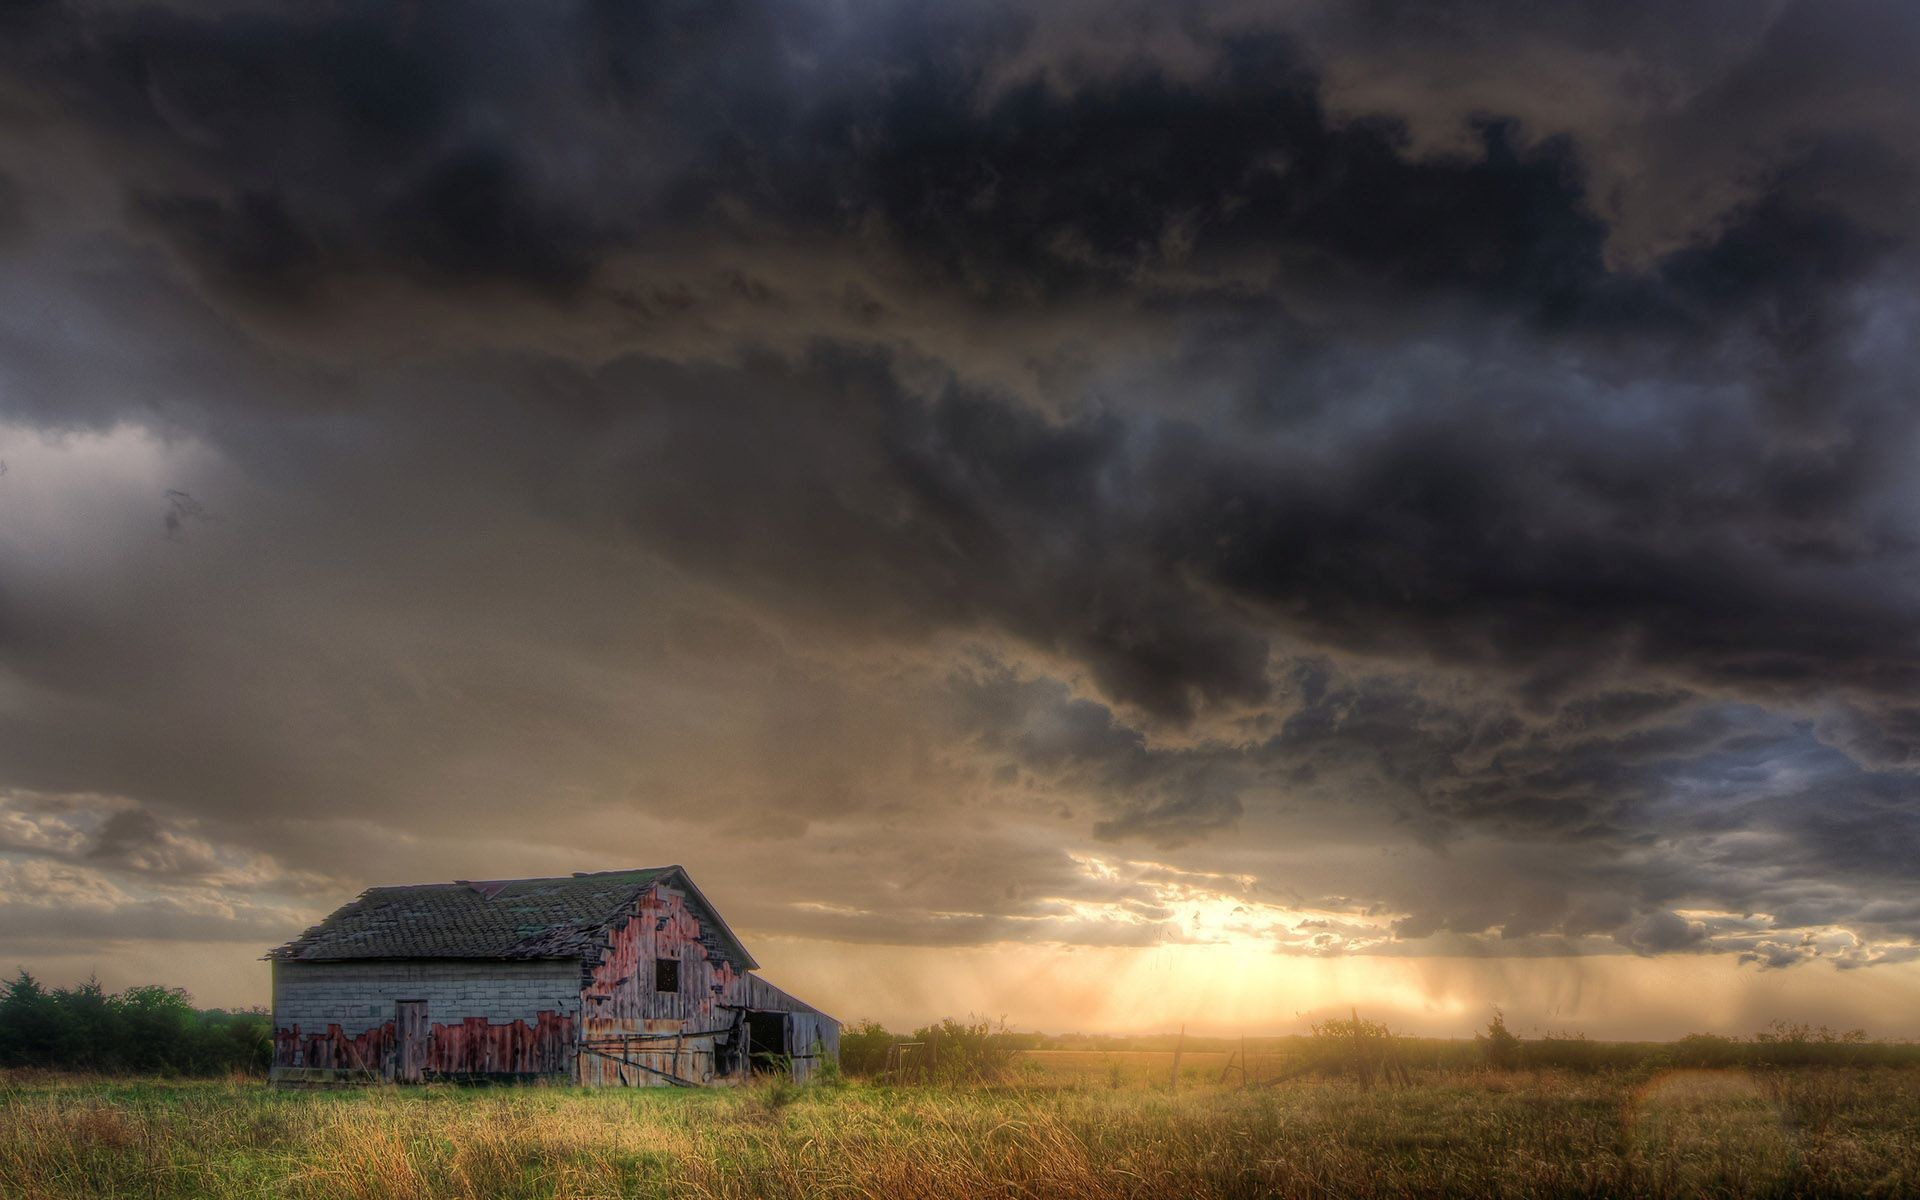 Abandoned cabin under the stormy sky Widescreen Wallpaper .